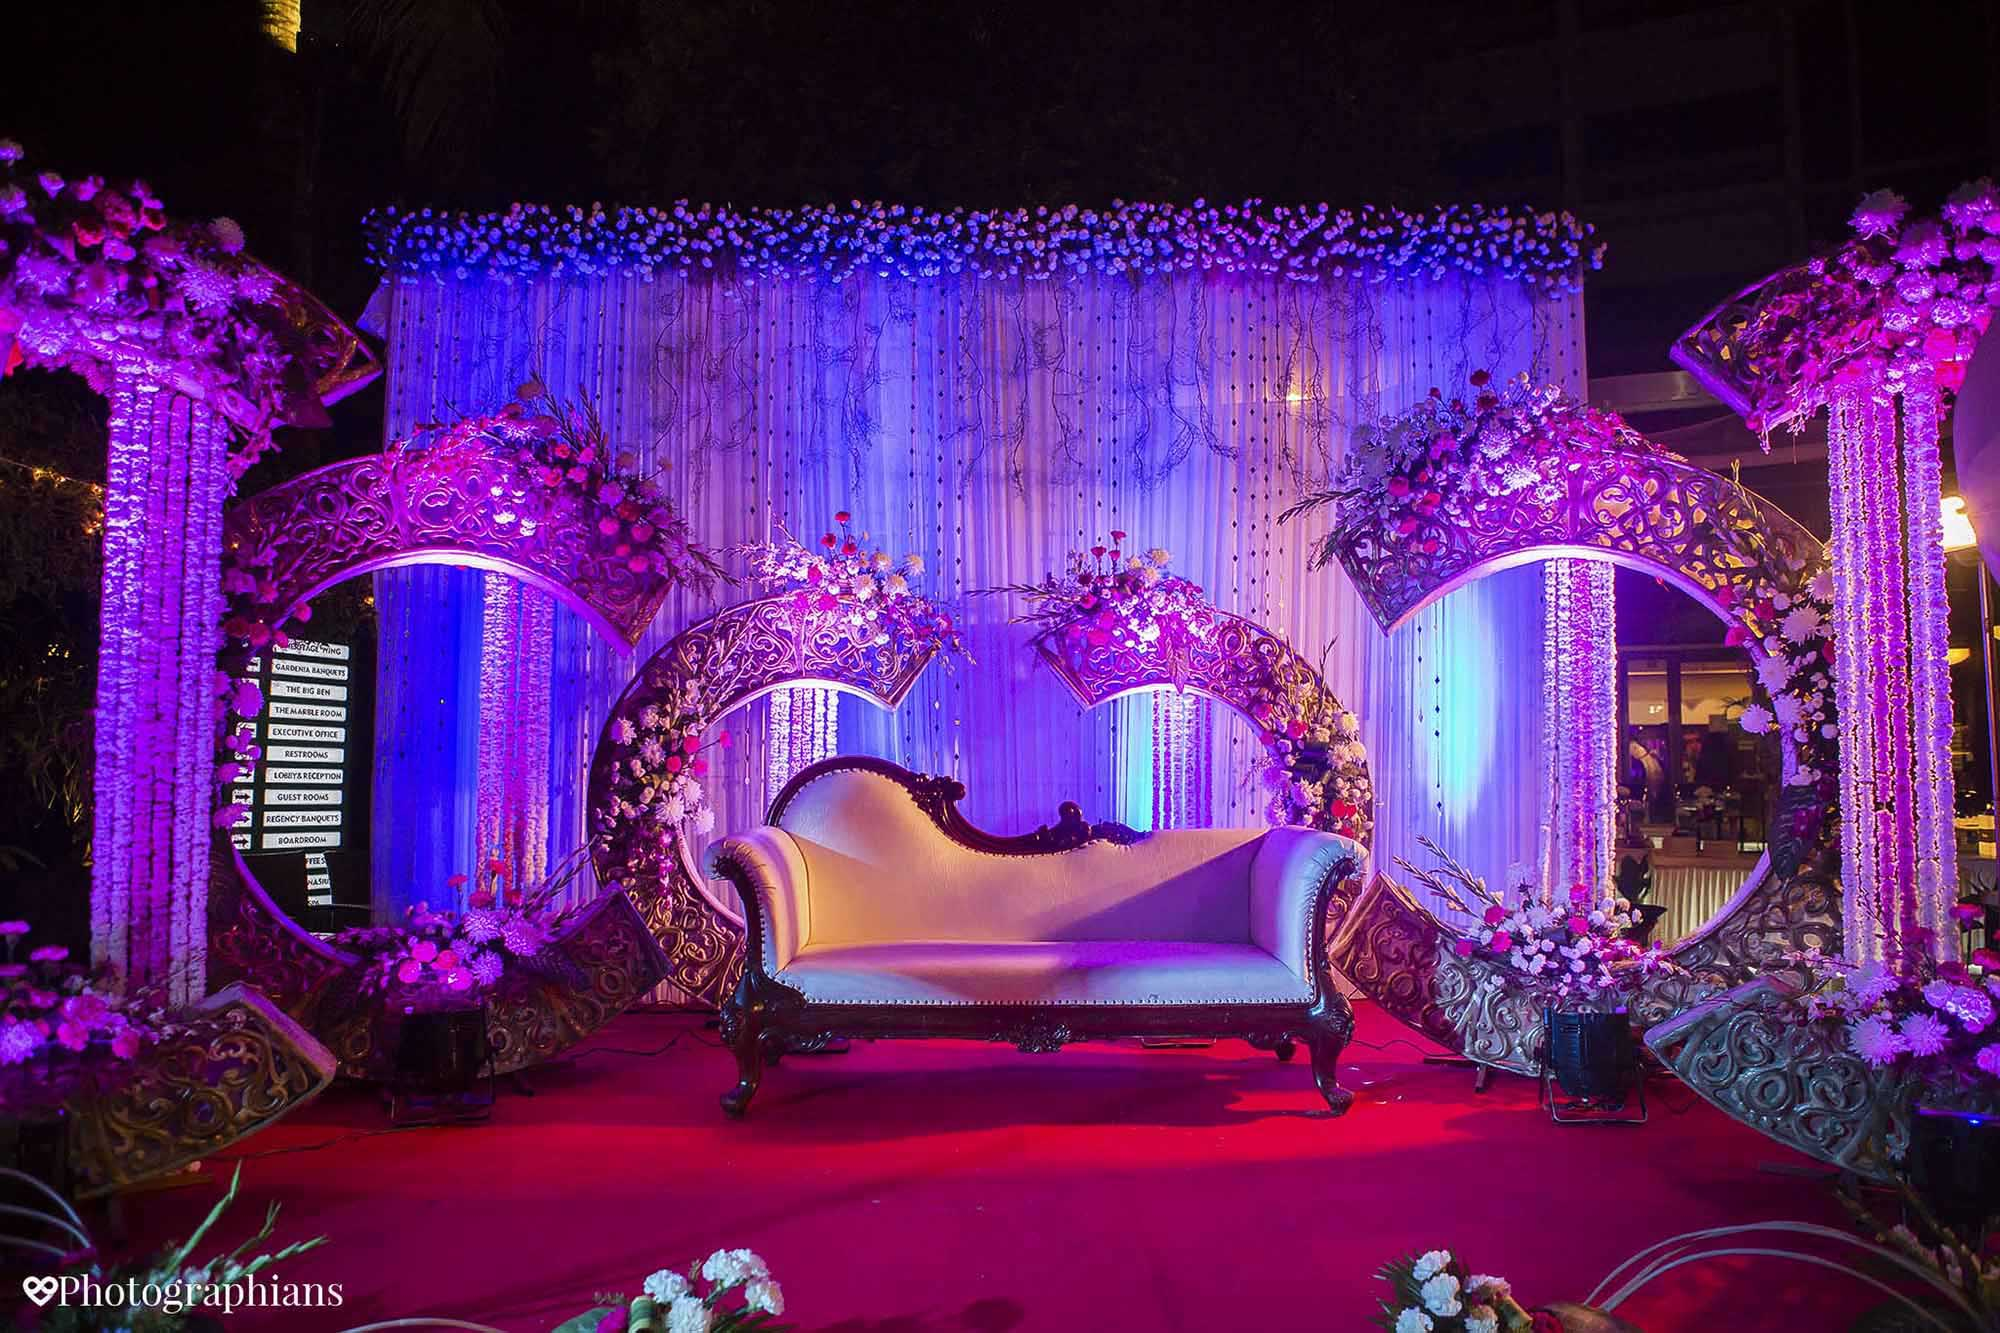 Bengali_Wedding_Photography_Kolkata_Photographians_092